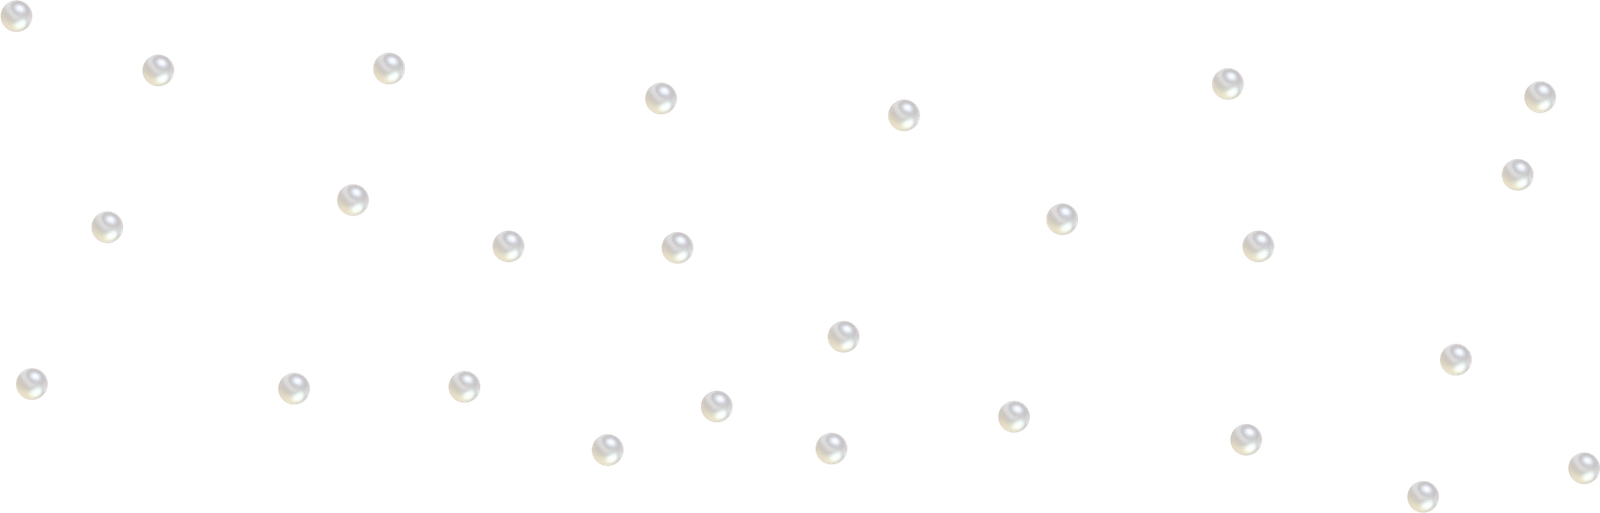 Pearl clipart string. Of pearls e pic